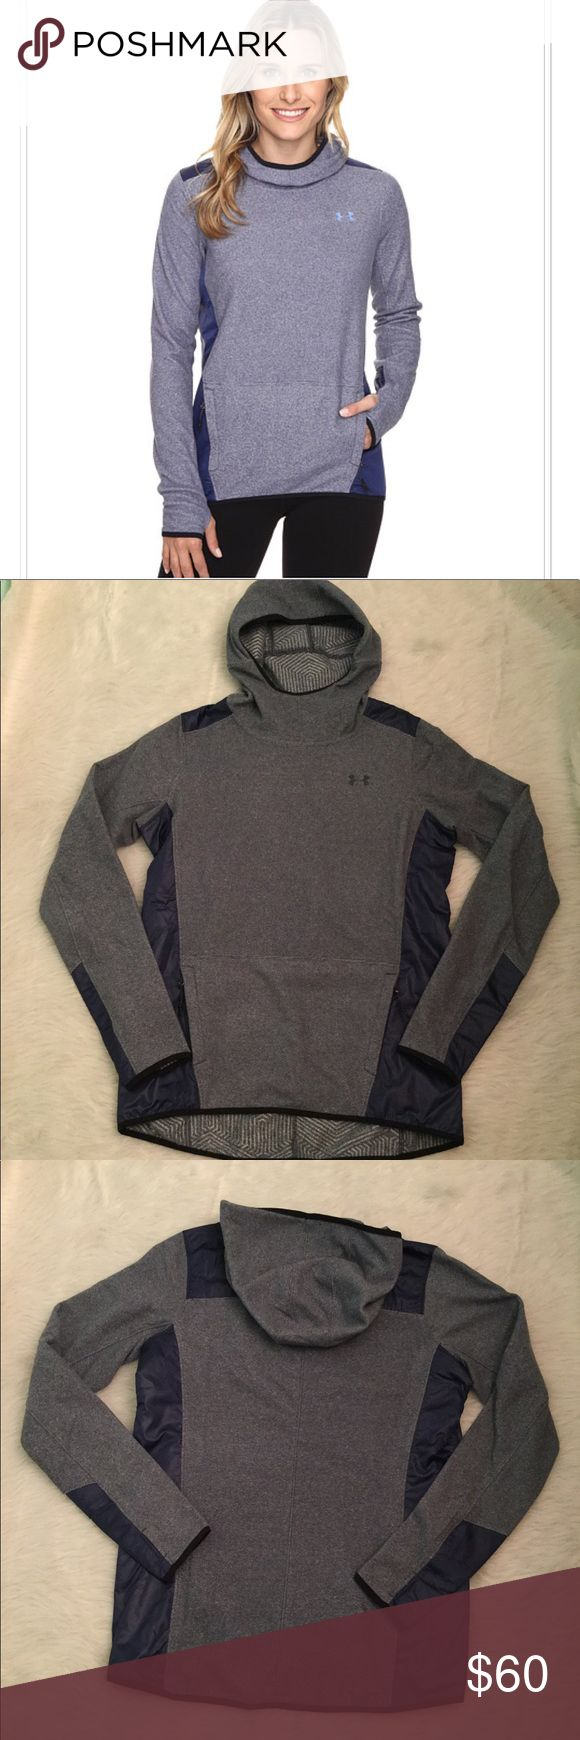 NWT under Armour Survivor Fleece Pullover Fleece pullover by Under Armour in Faded Ink (Blue).  Features a relaxed fit for ultimate comfort and unrestricted mobility.  ColdGear Infrared technology utilized a soft, thermo-conductive inner coating to absorb and retain body heat.  Attached 3 panel hood with a scuba neckline.  Long sleeve with thumb hole accents at cuff.  Zippered hand pockets offer secure storage solutions.  Curved hemline drops at back fo more coverage. 100% polyester. Under…